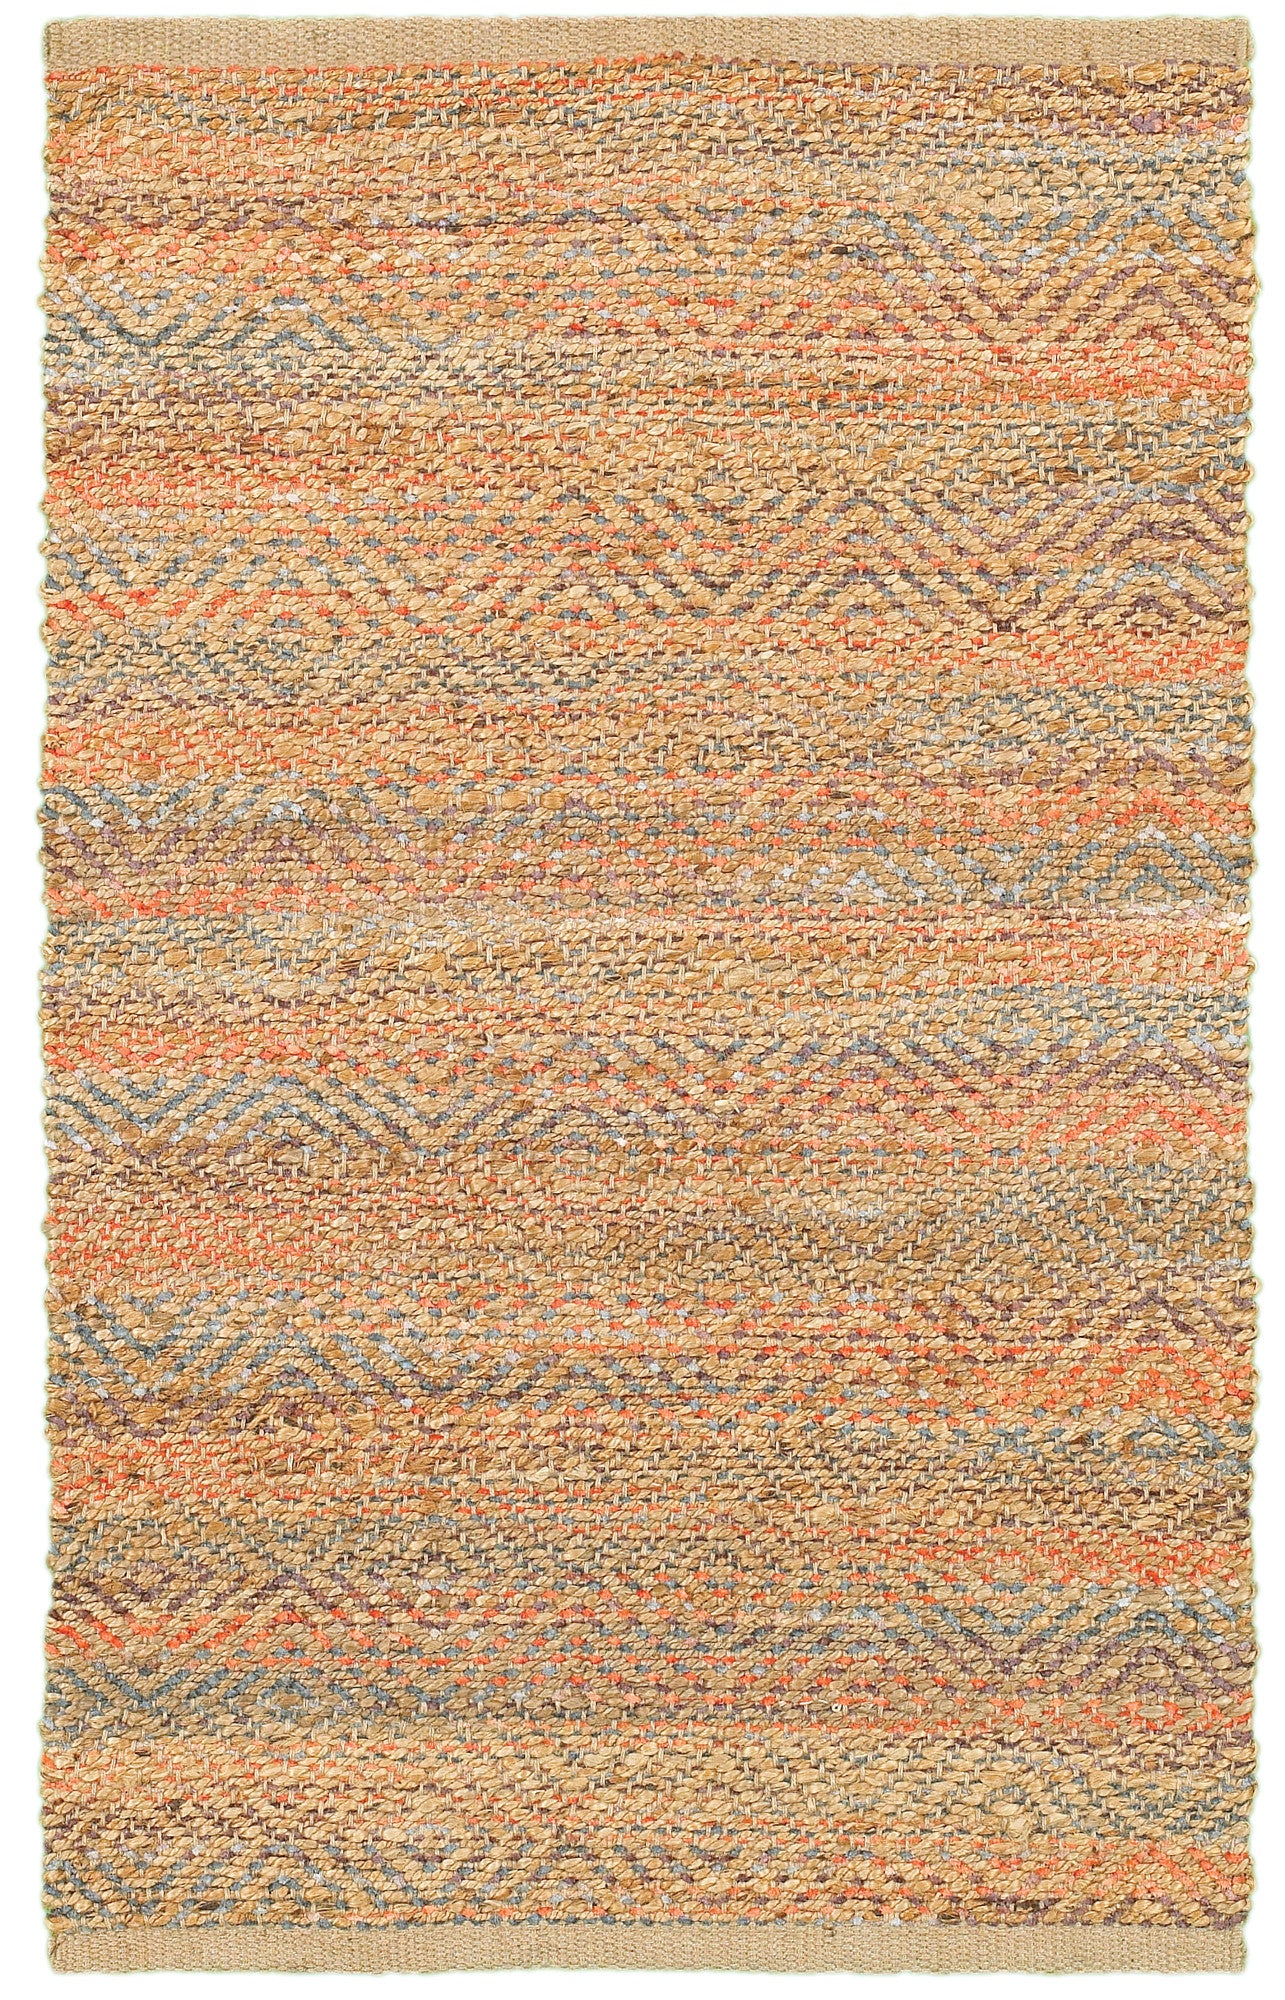 LR Resources Accent 04022 Red Area Rug